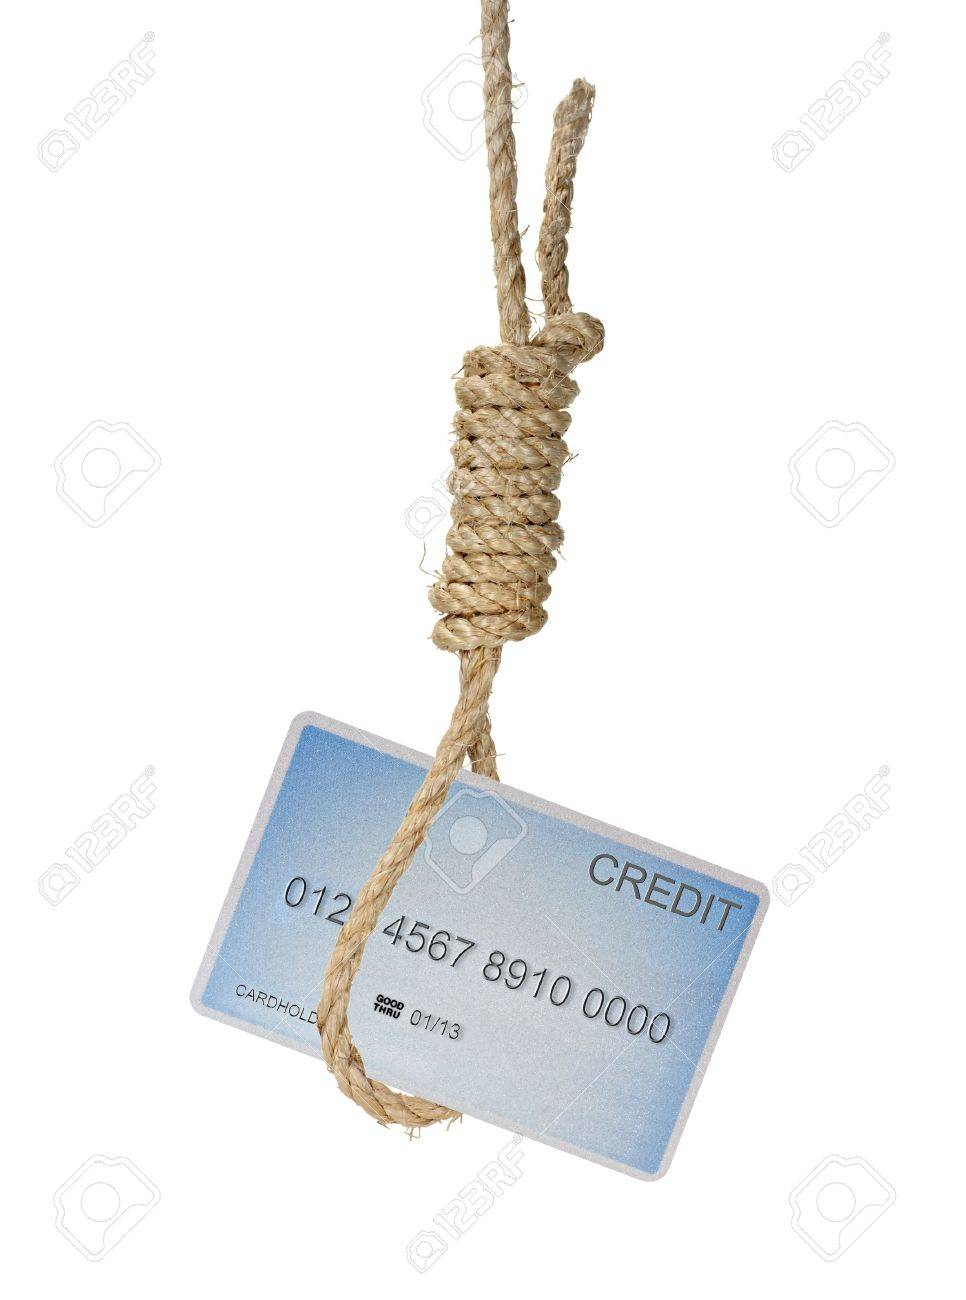 Credit Card Hanging In A Noose Isolated On White Stock Photo